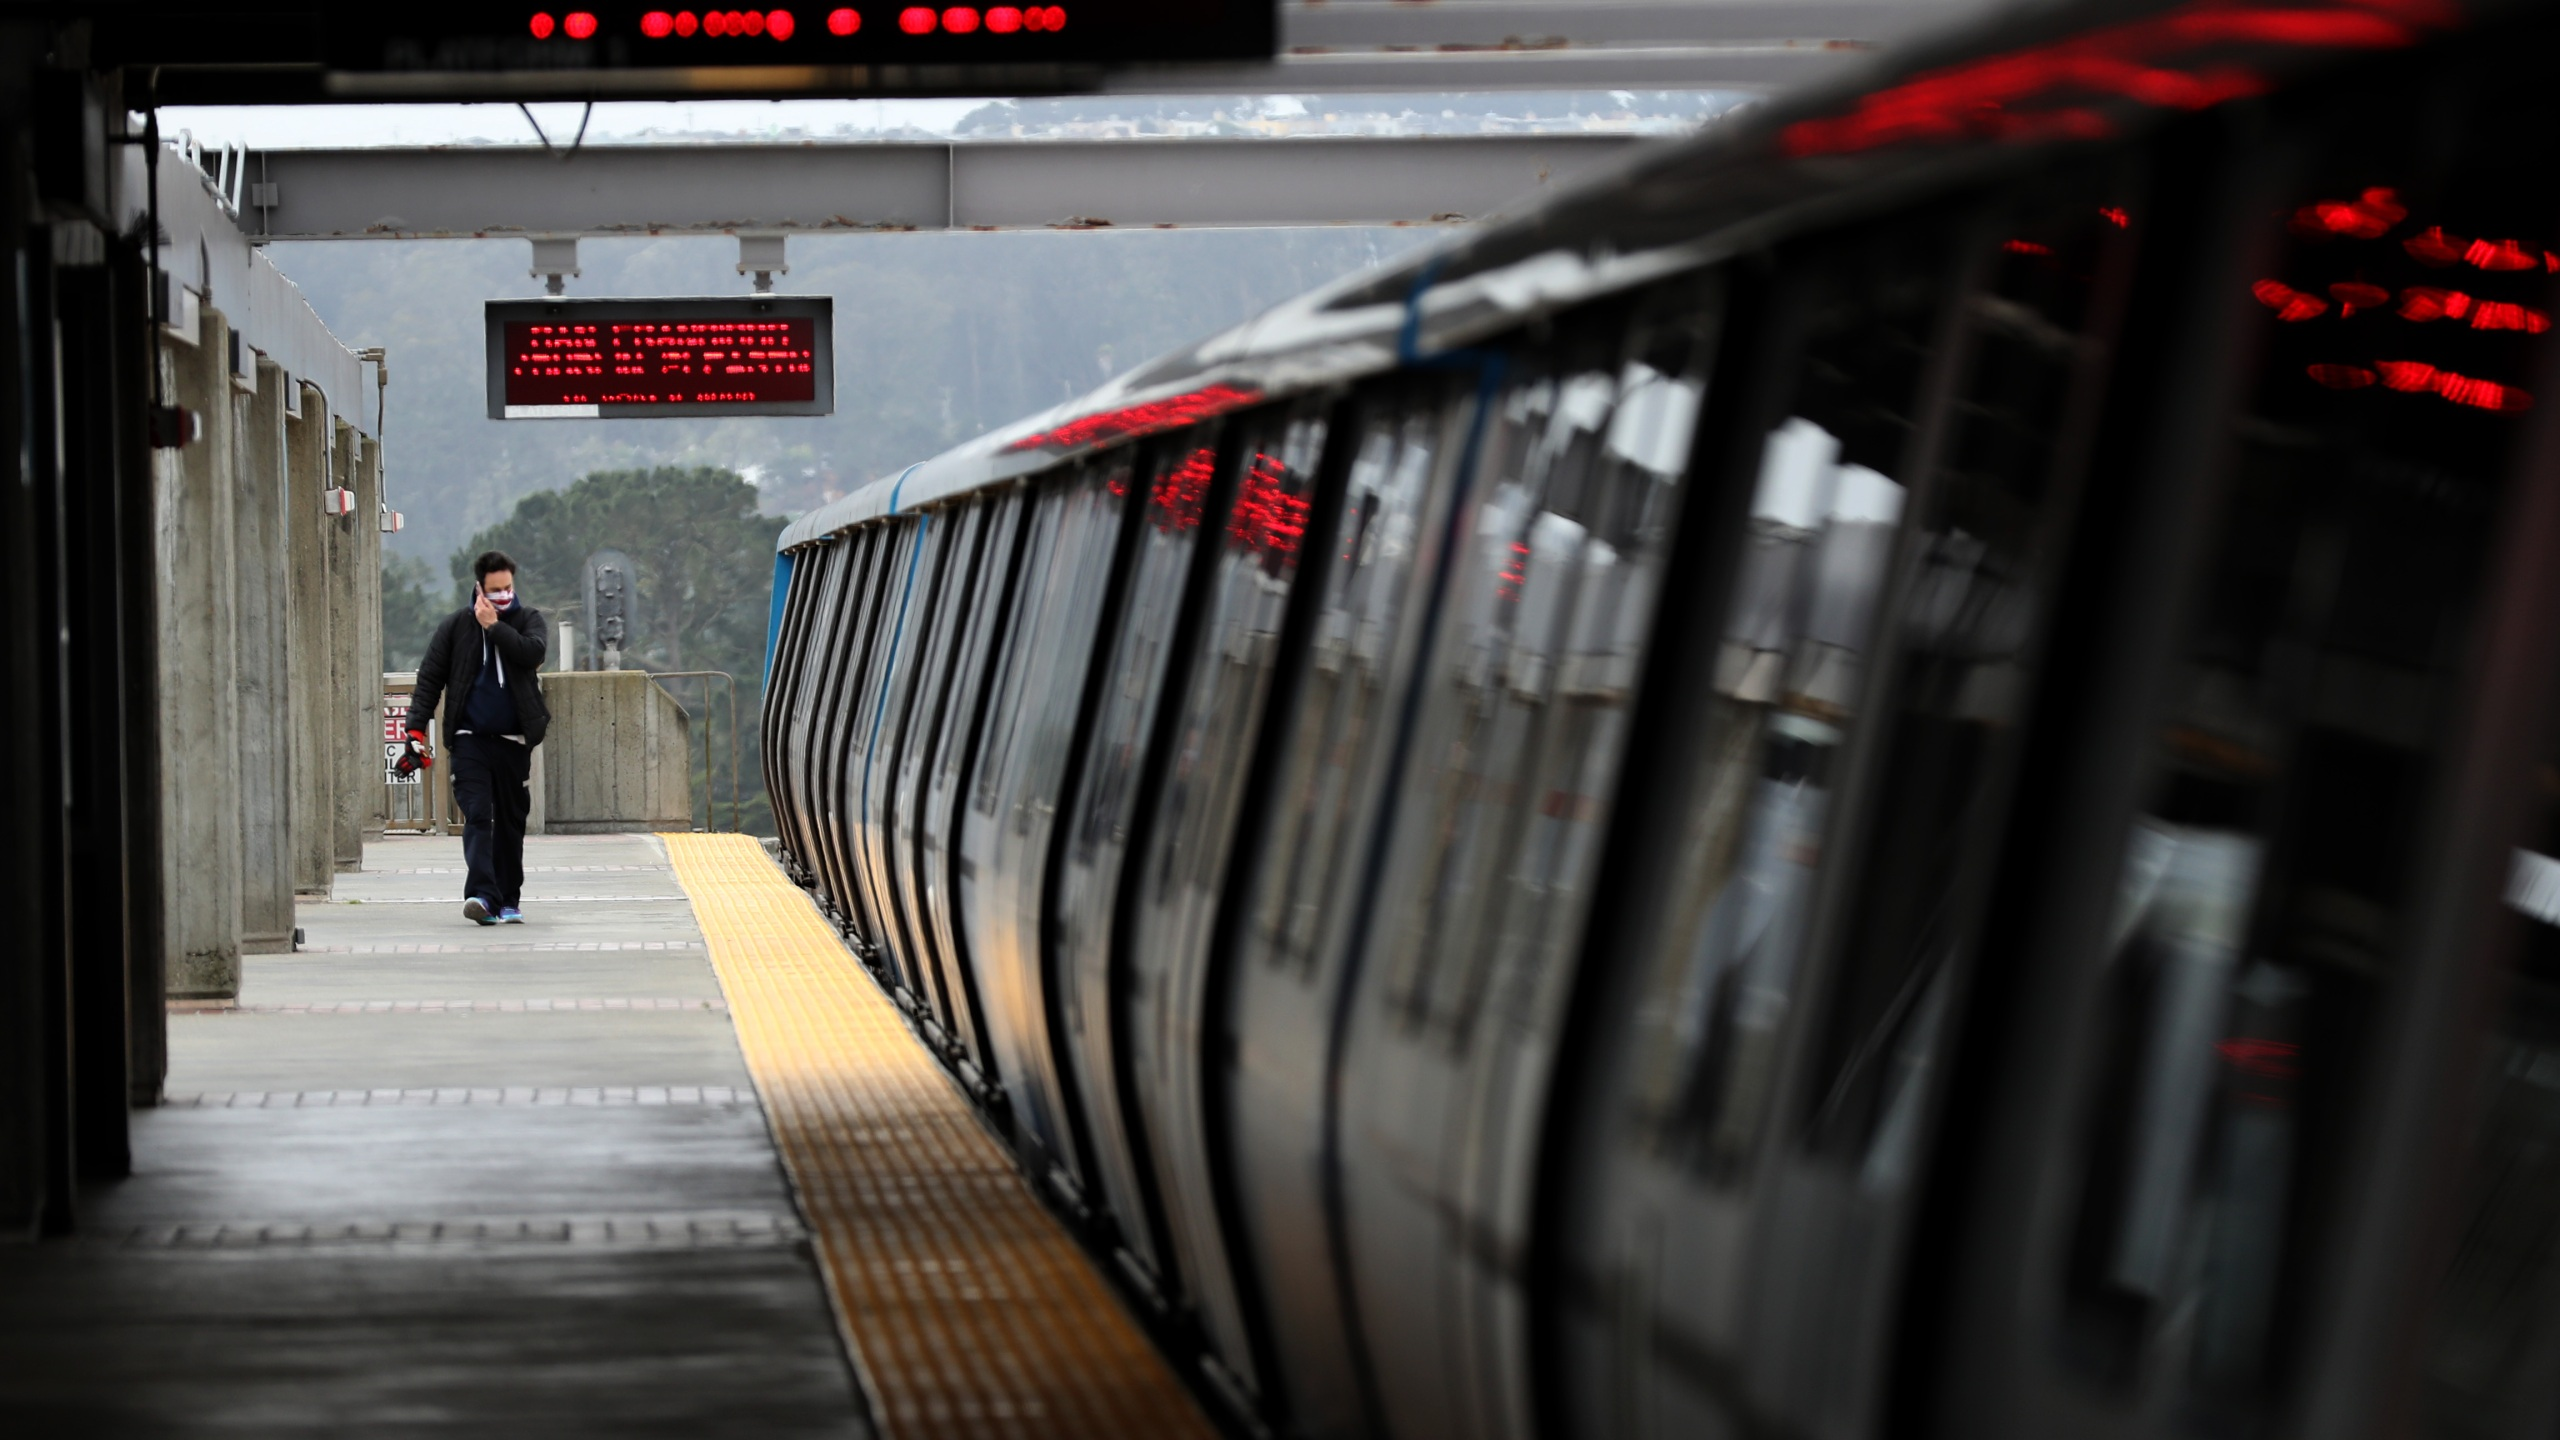 The platform at the Daly City Bay Area Rapid Transit (BART) station is deserted on April 08, 2020 in Daly City, California. (Justin Sullivan/Getty Images)